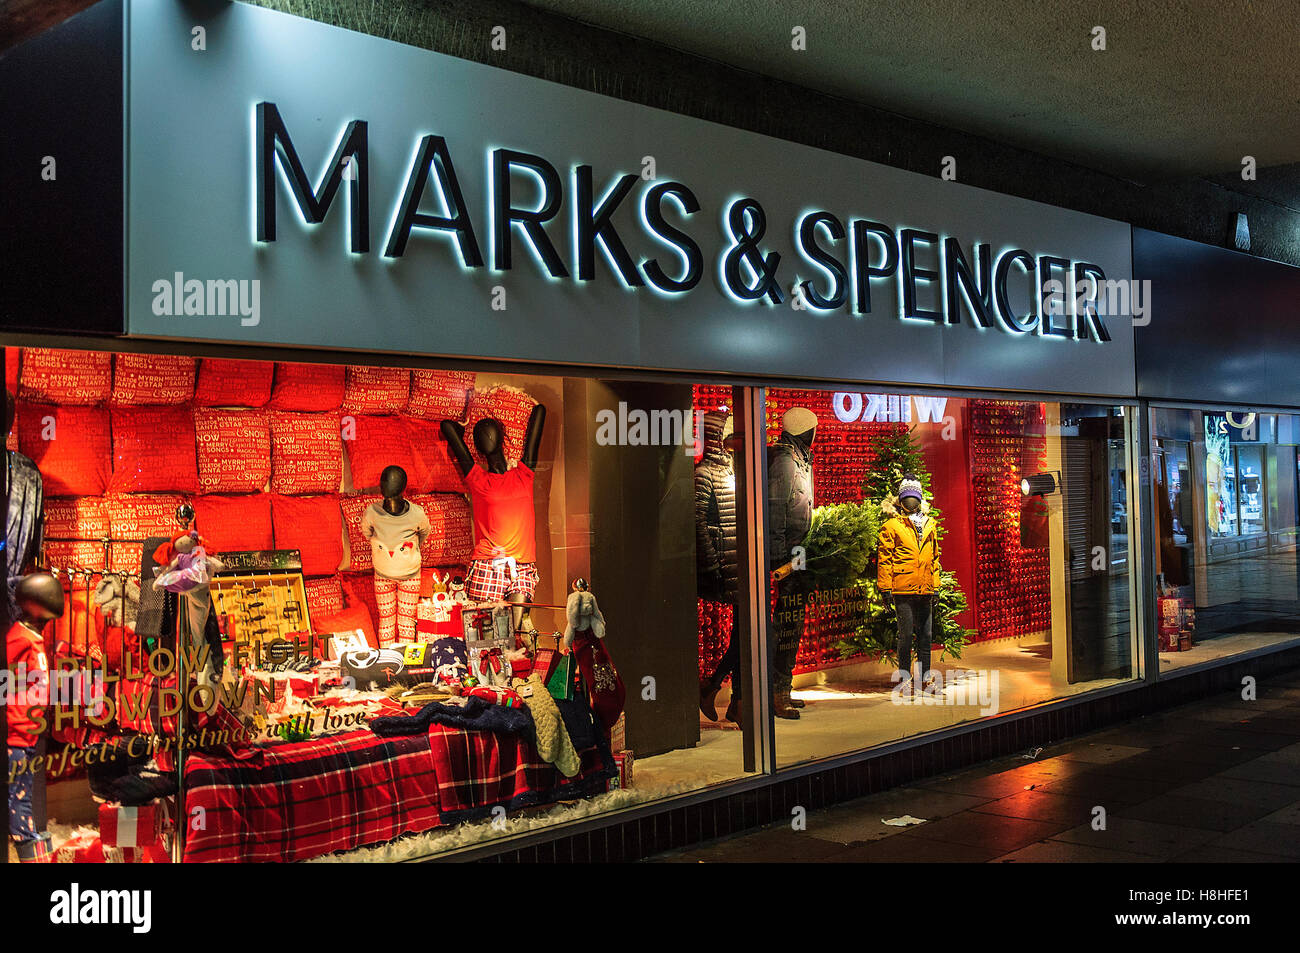 Marks and Spencer shop front in Southport, Merseyside. Stock Photo